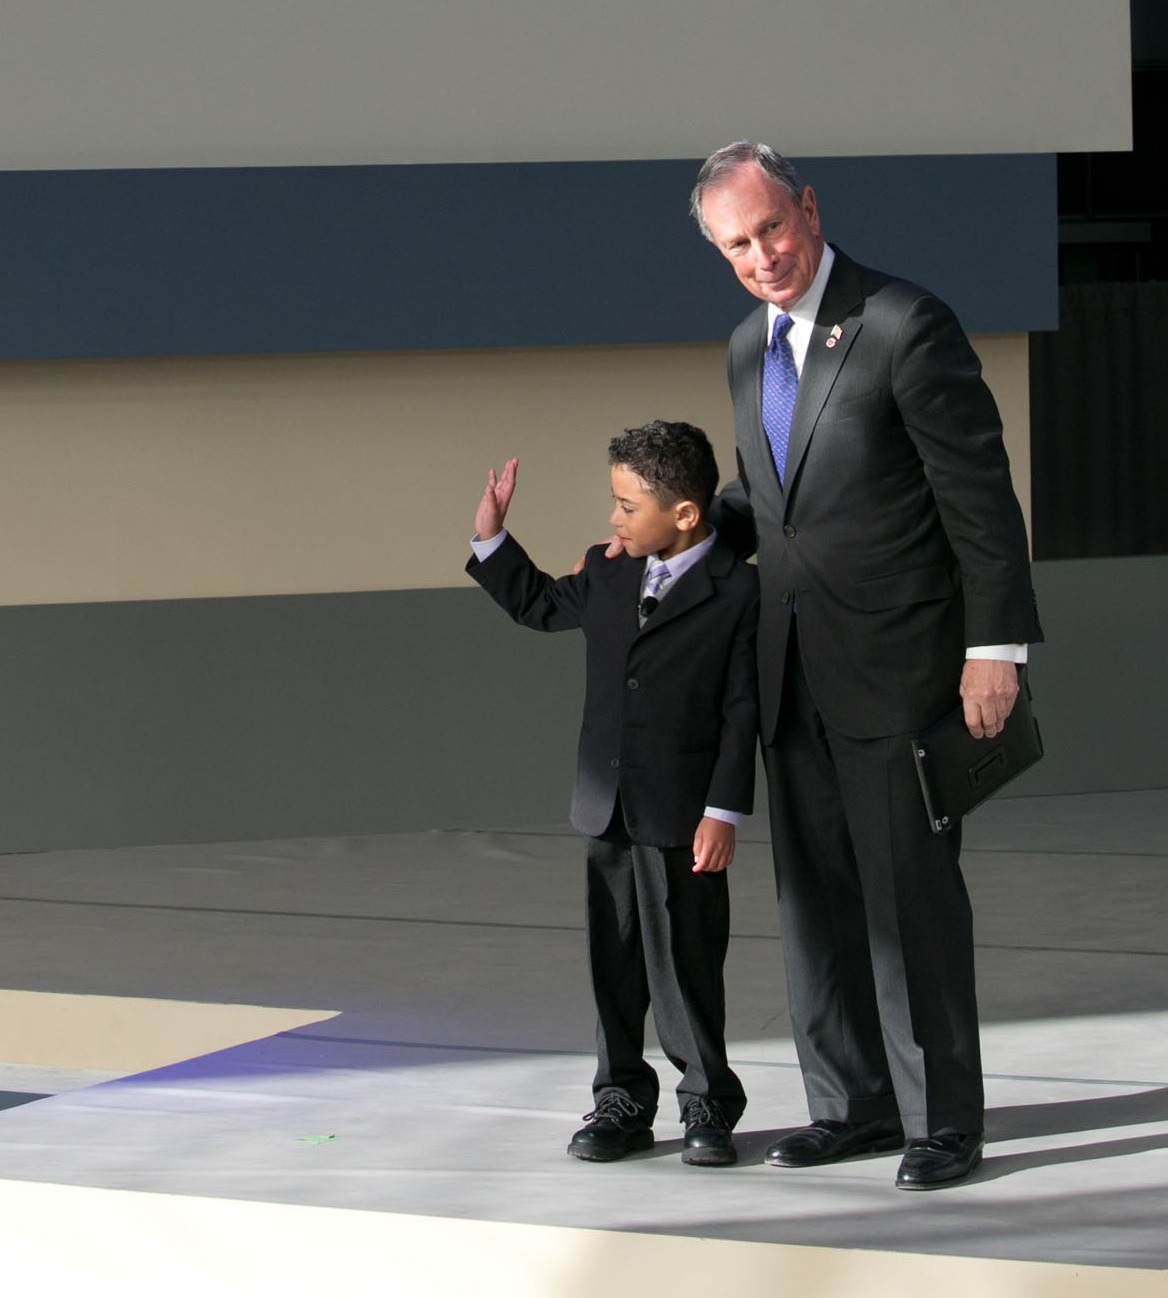 Michael Bloomberg with Gavin Michel-Baird at the dedication of the Charlotte R. Bloomberg Children's Center, April 12, 2012. For Gavin's story, click here.